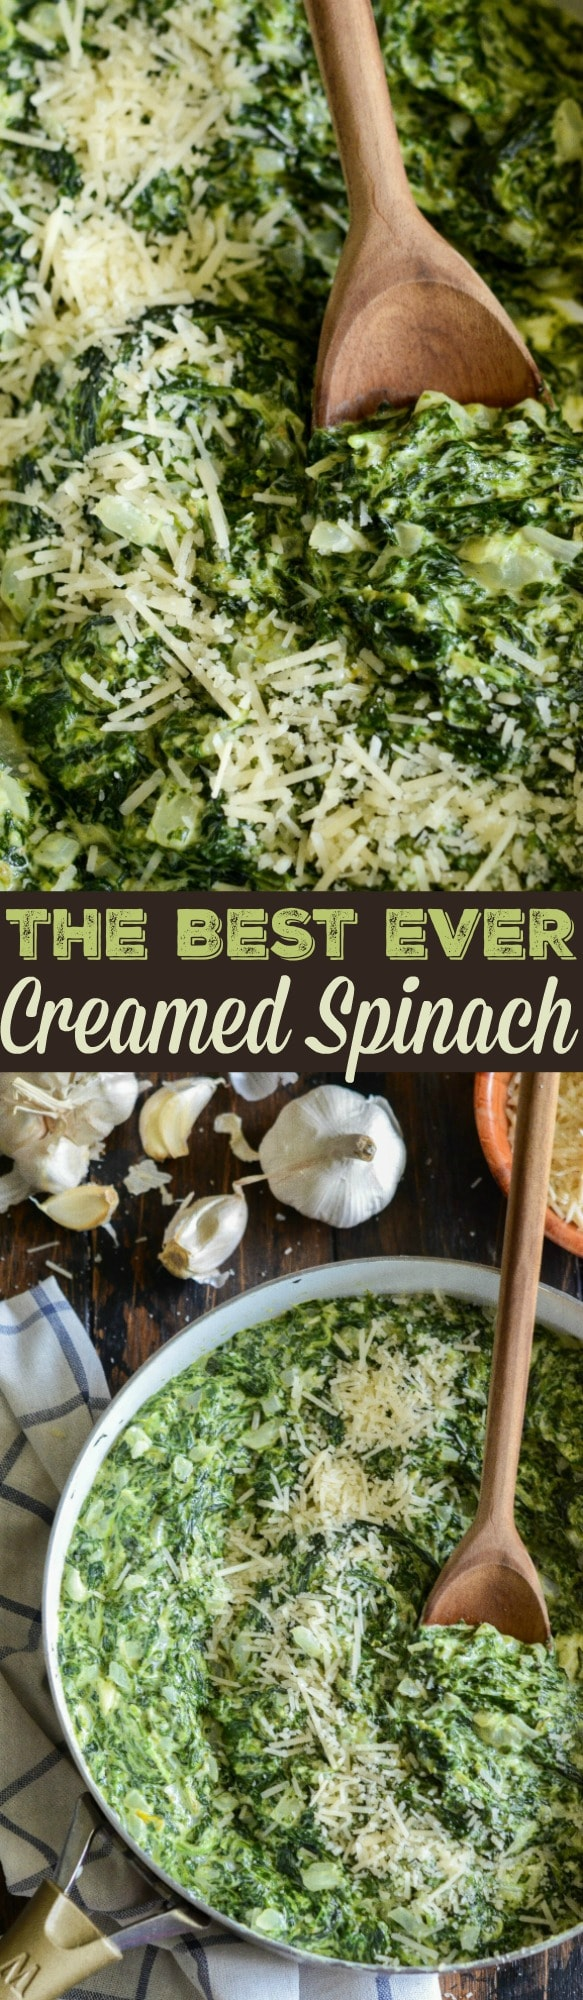 The Best Creamed Spinach: my favorite steakhouse style, extra creamy, creamed spinach takes only 15 minutes to make and is a tried and true family favorite!